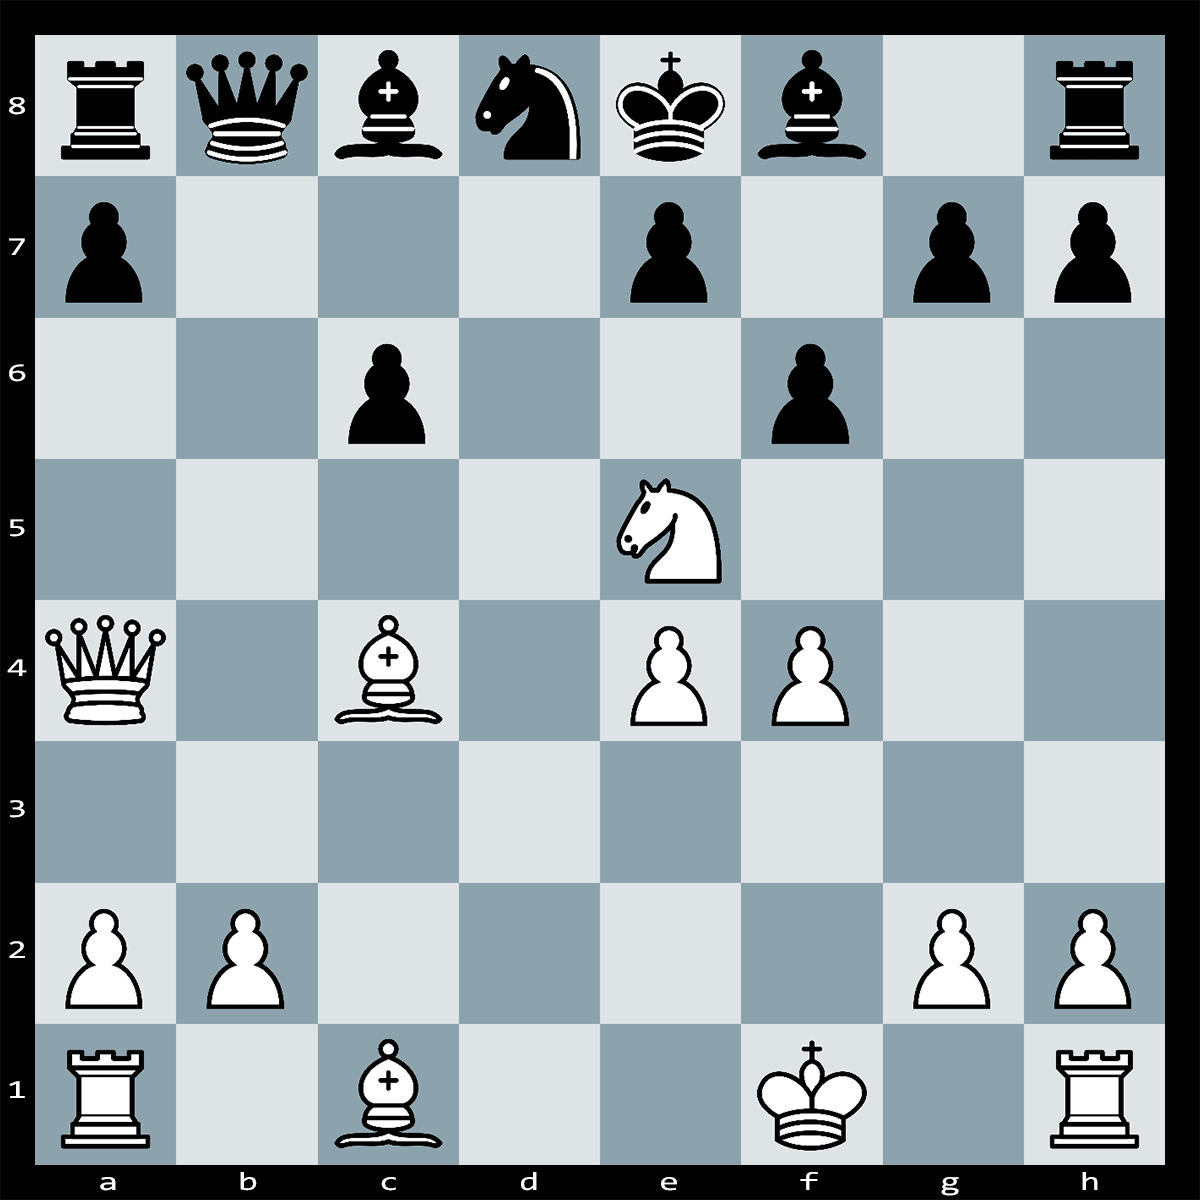 Mate in Thee, White to Play | Mihai Suba vs Oyula Sax Hastings 1983